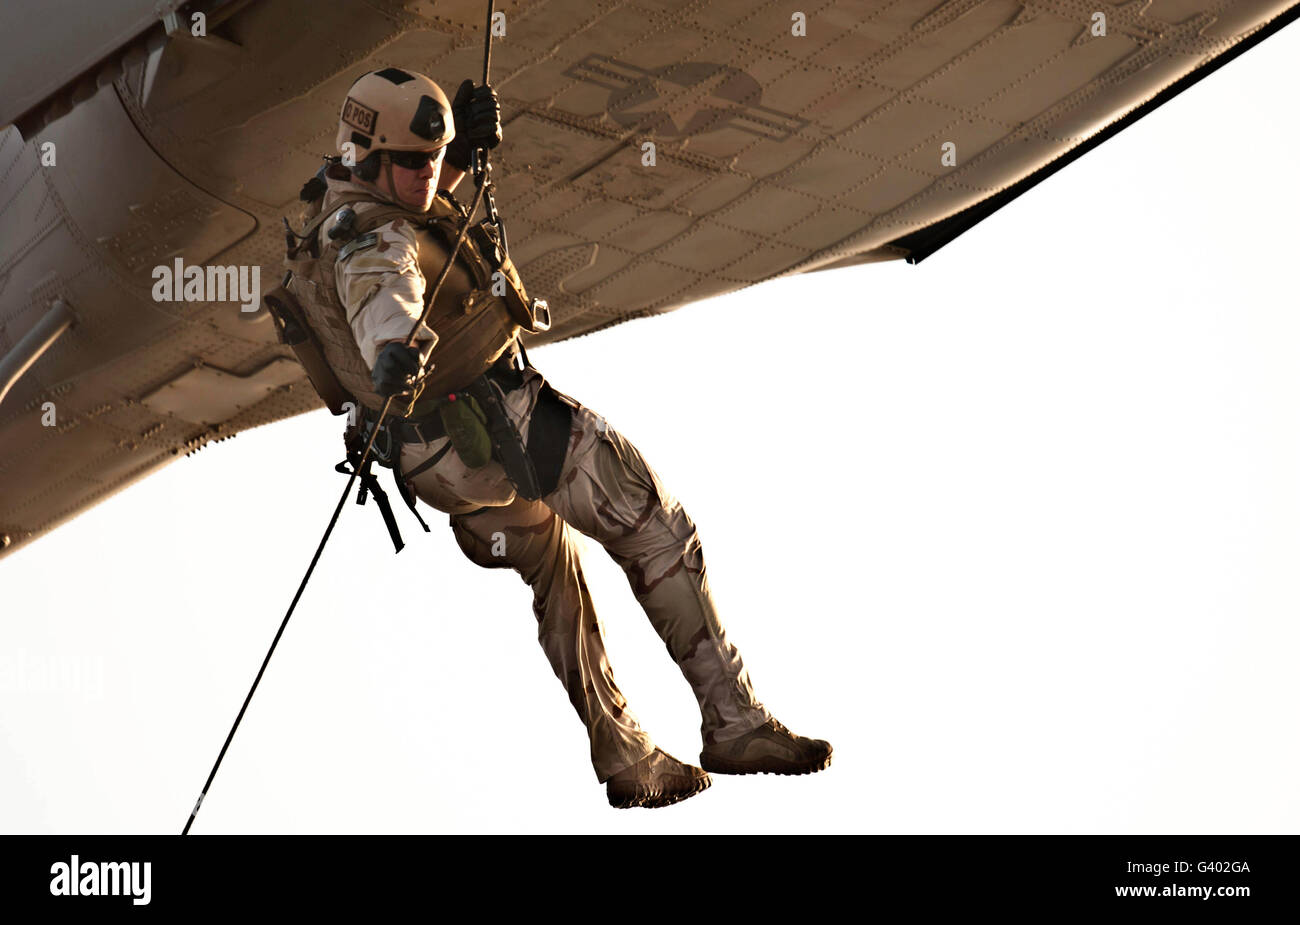 A soldier rappels from an MH-60S Knighthawk helicopter. - Stock Image